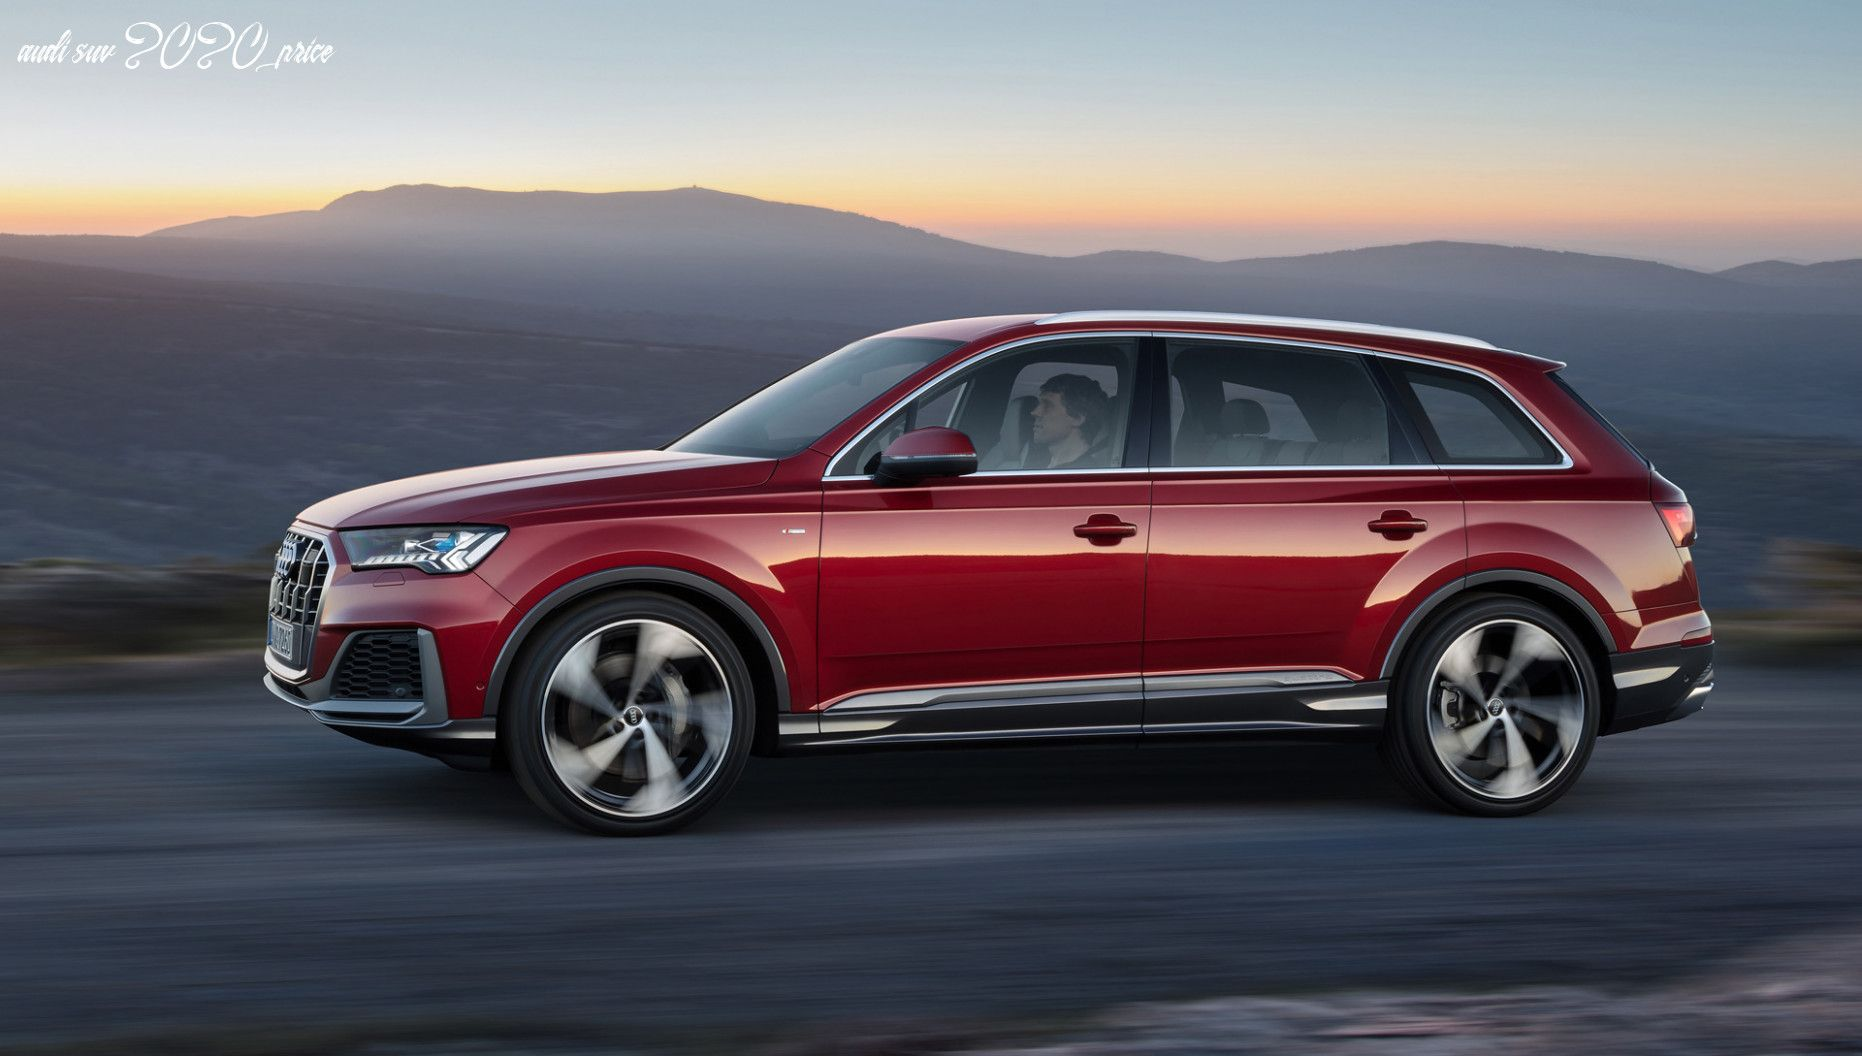 Audi Suv 2020 Price In 2020 Suv Audi Q7 Price Suv Prices